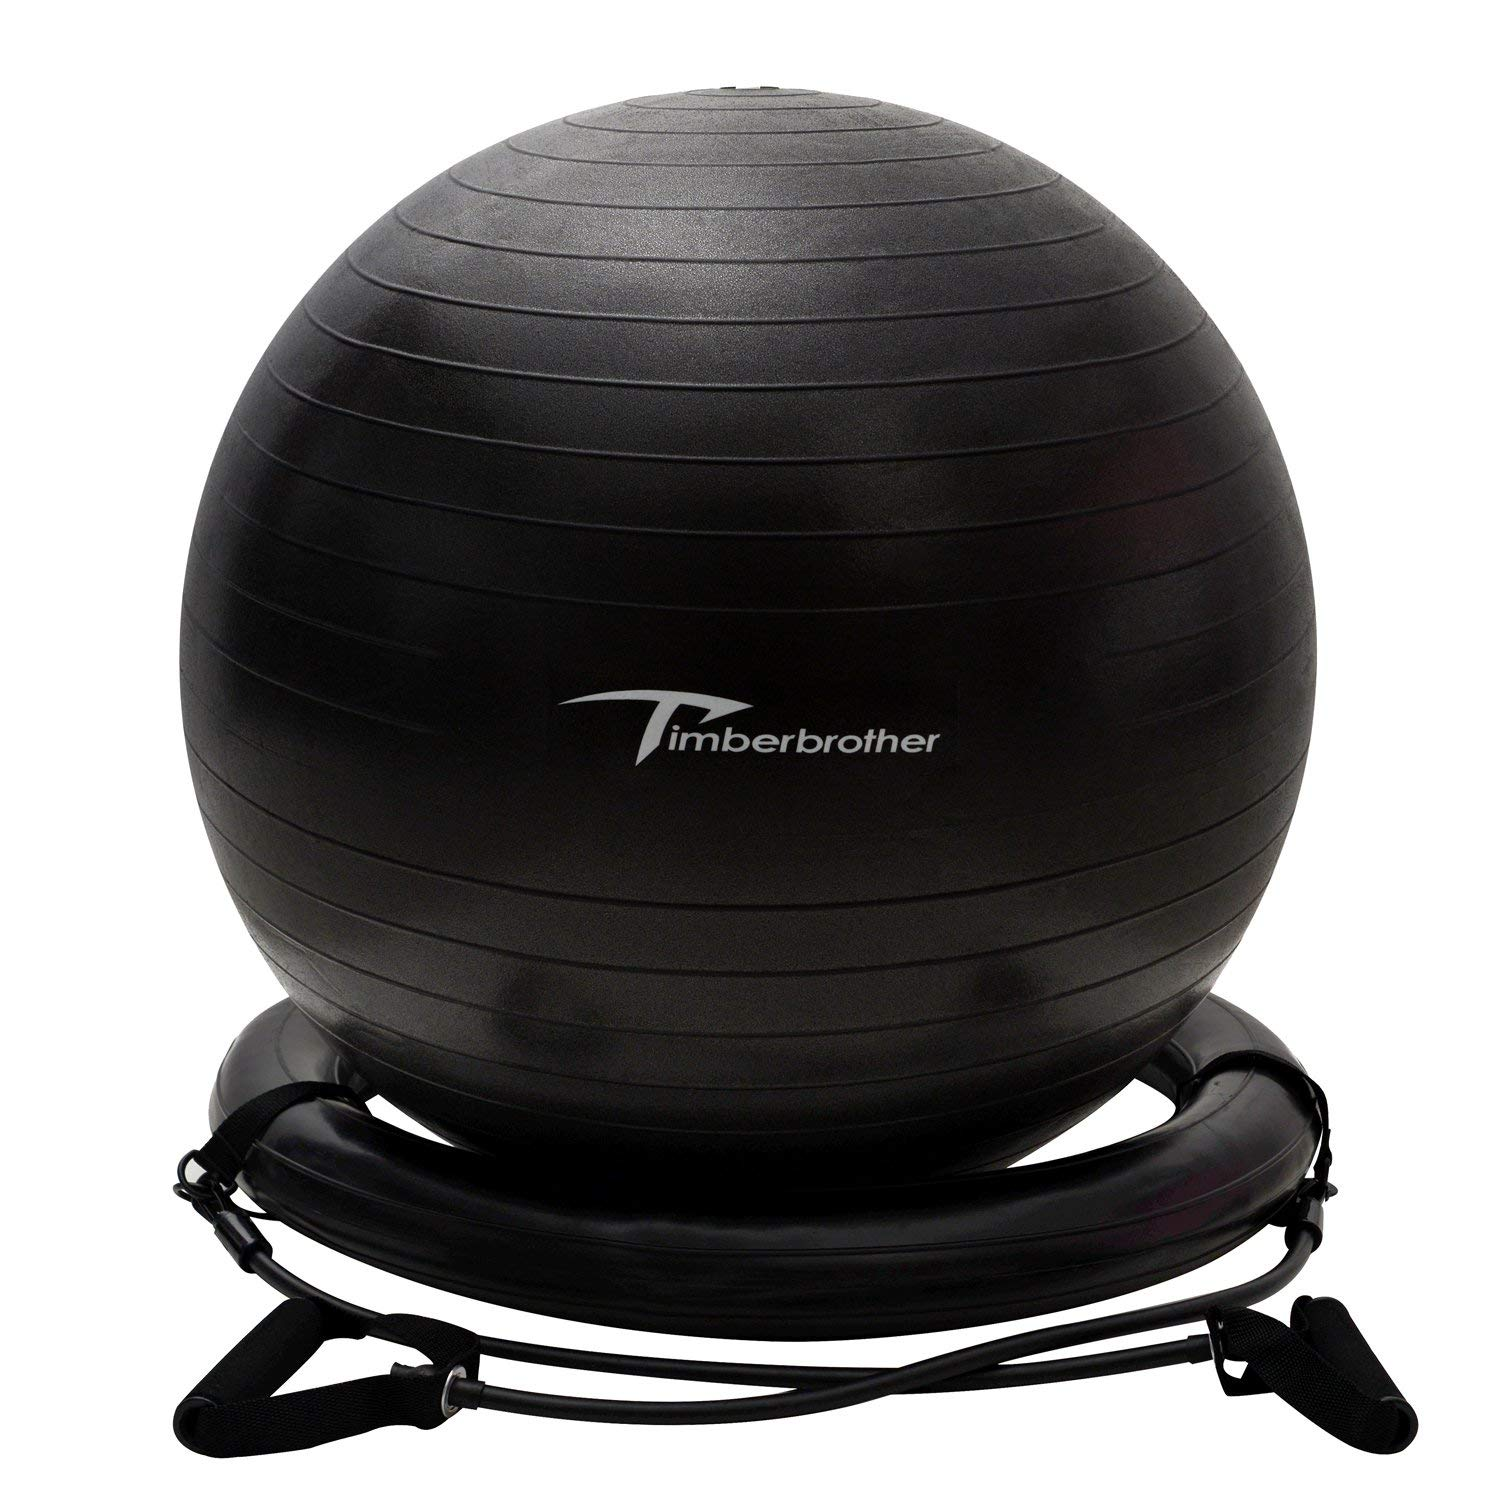 Pilates Ball Chair Cheap 75cm Exercise Ball Chair Find 75cm Exercise Ball Chair